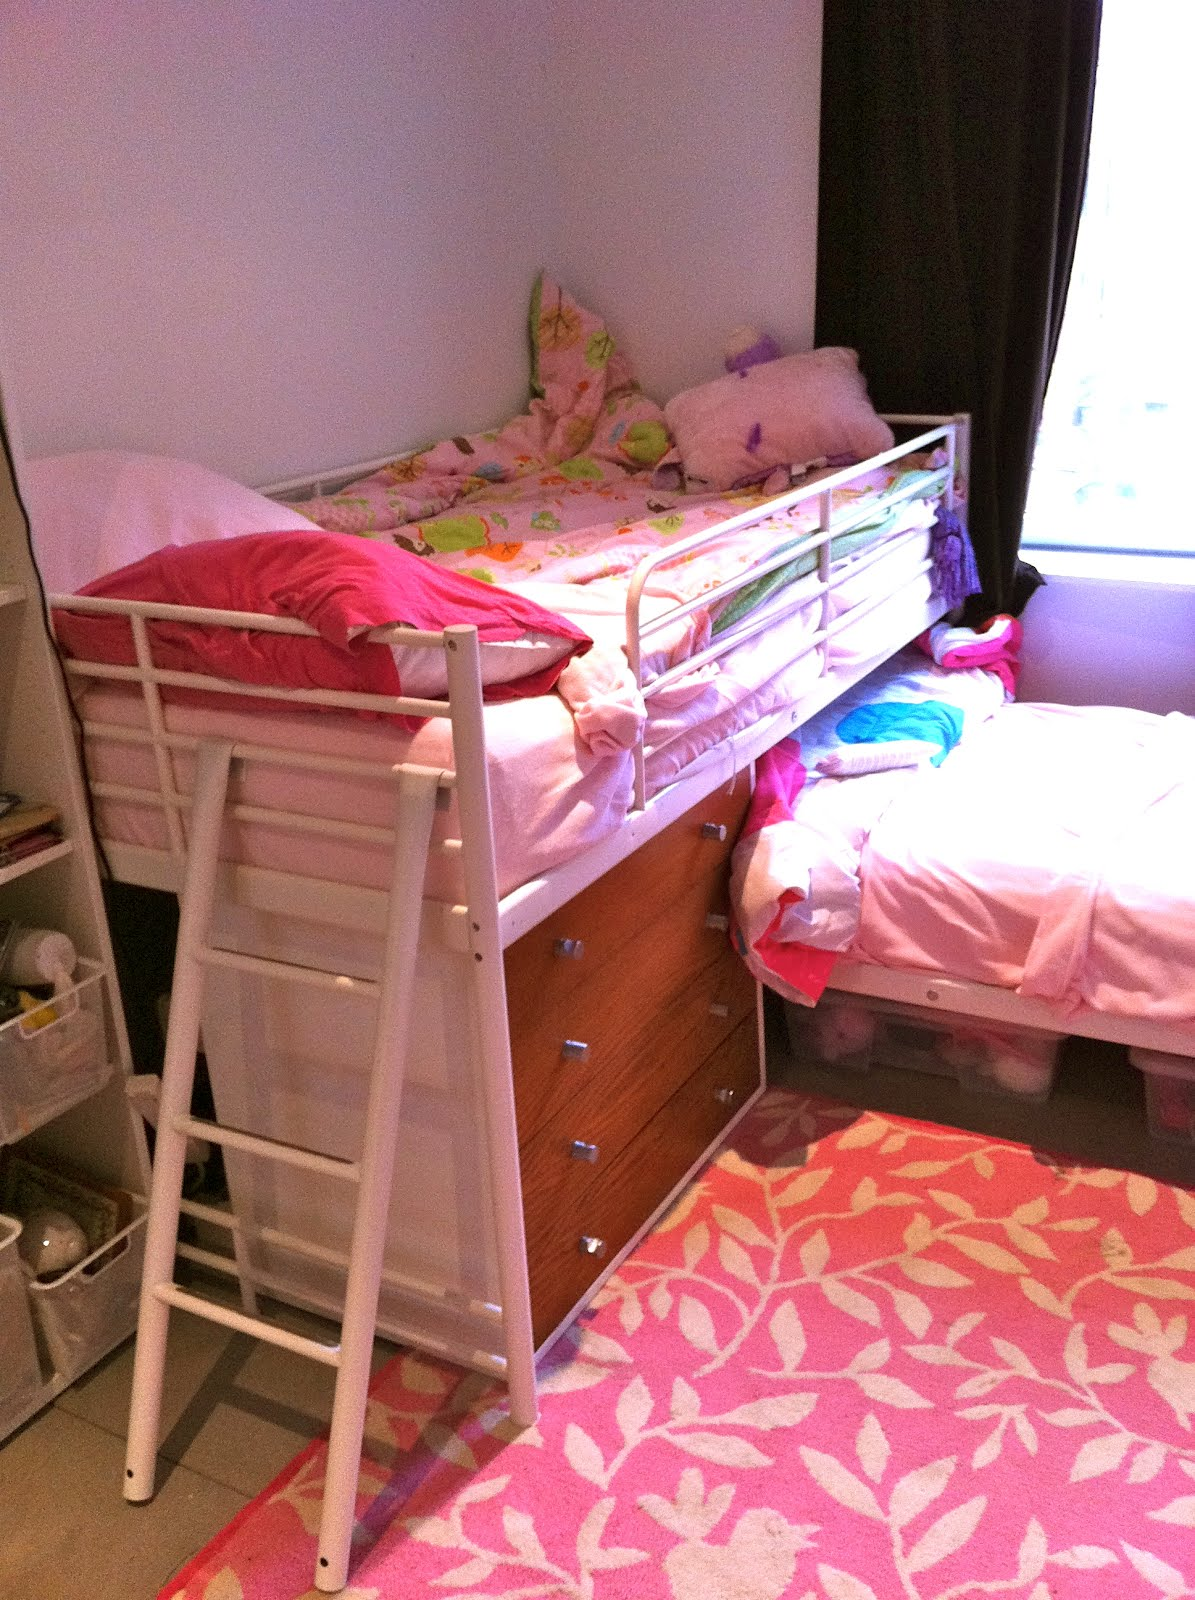 Kids Bedroom Ikea Childrens Bunk Beds Ikea Bedding Childrens Bunk Beds Ikea Home